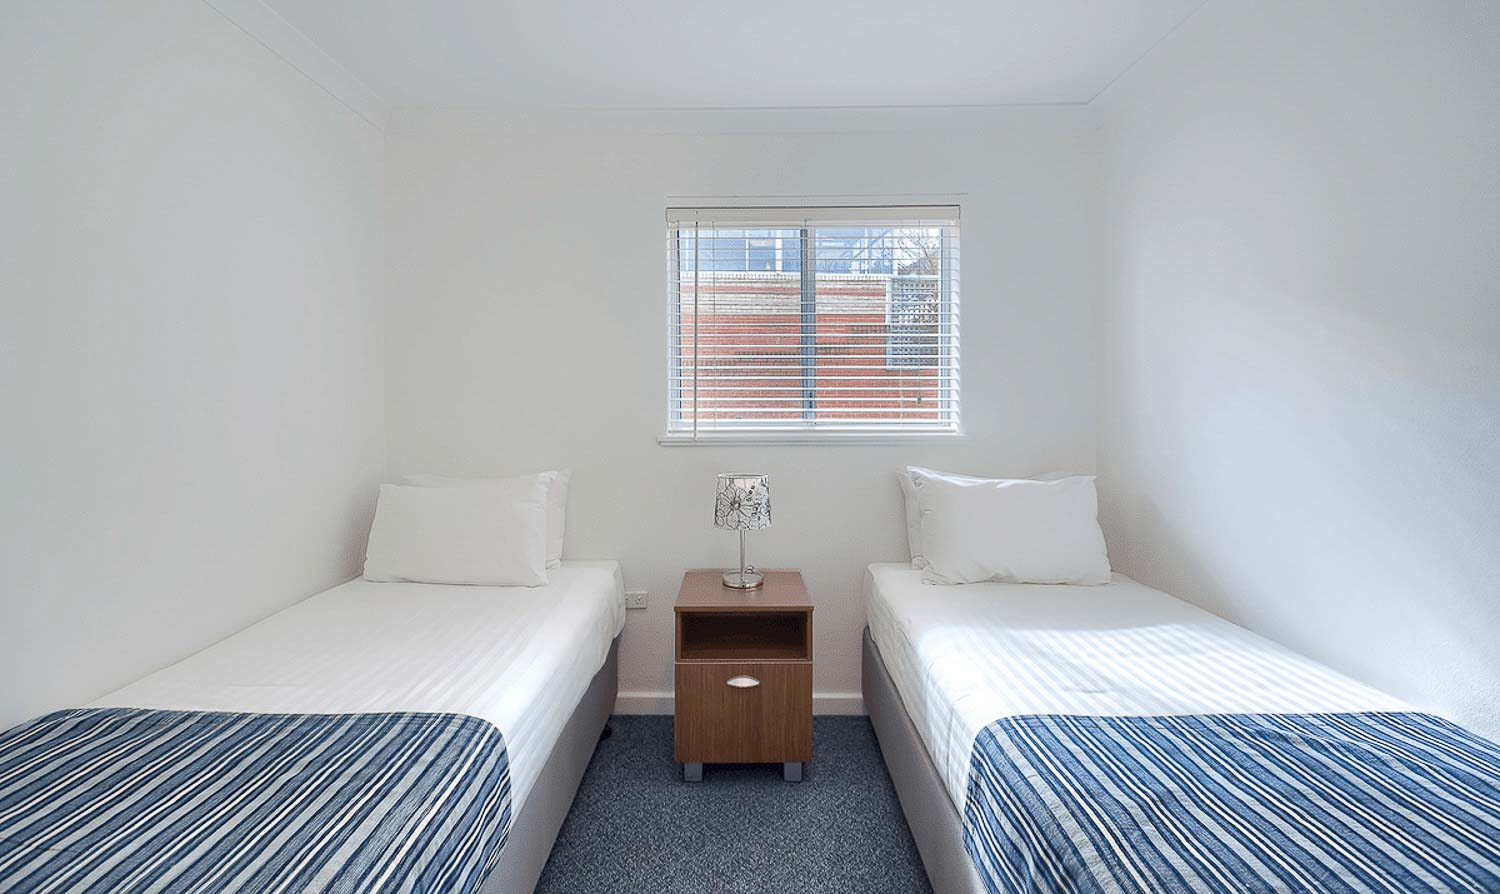 best-western-albany-apartments-hotel-motel-accommodation-2-bedroom-apartment-1.jpg